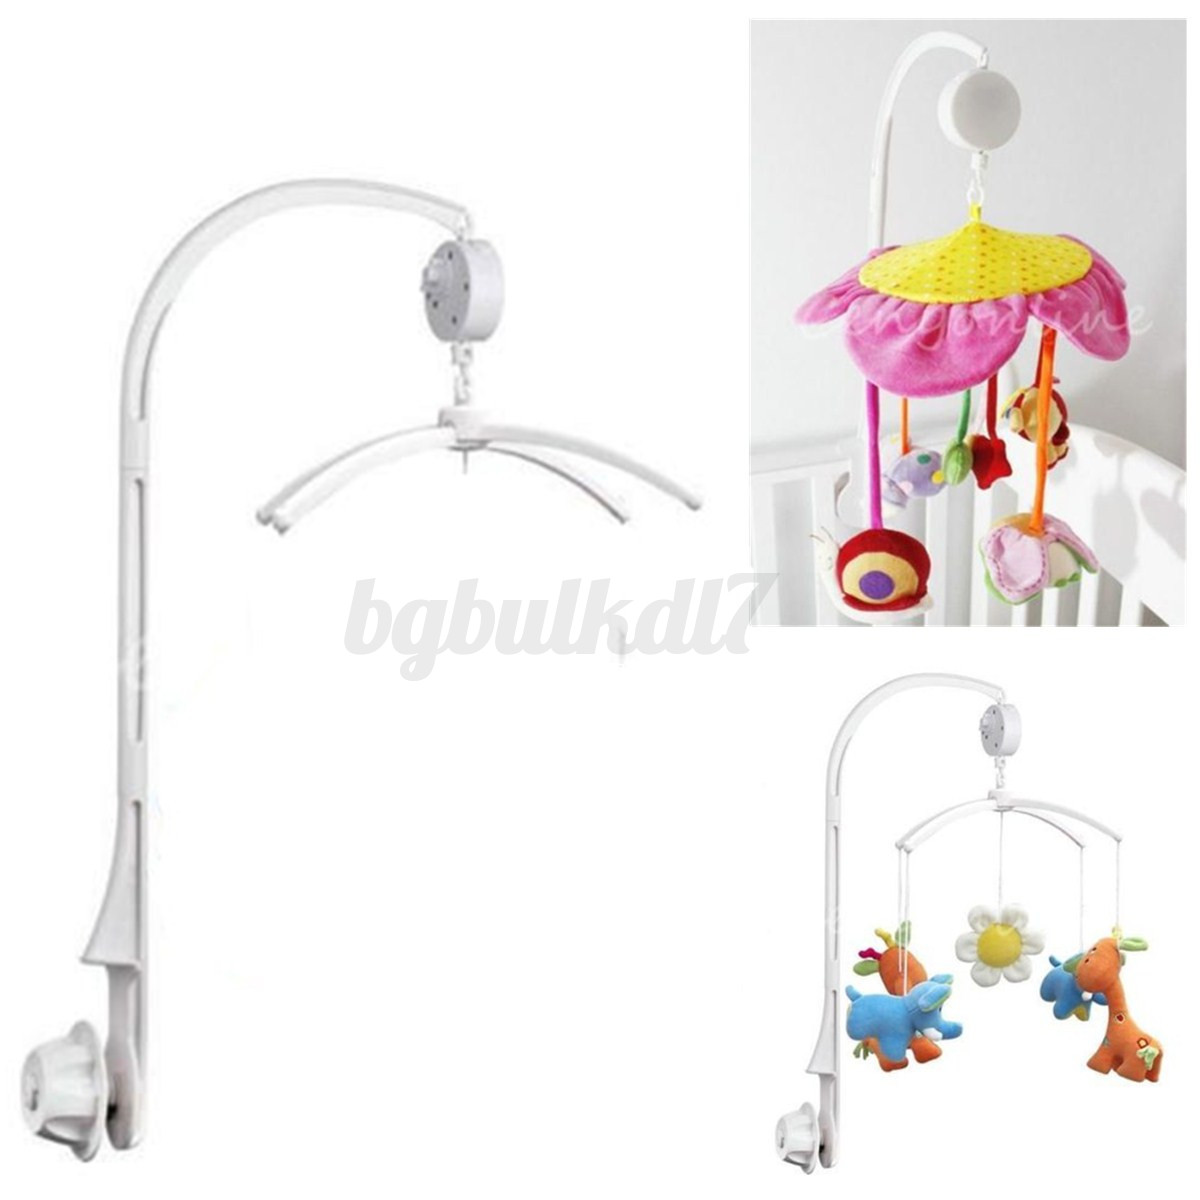 XuBa Baby Infant Rotary Mobile Crib Bed Clockwork Movement Music Box Kids Develop Toy